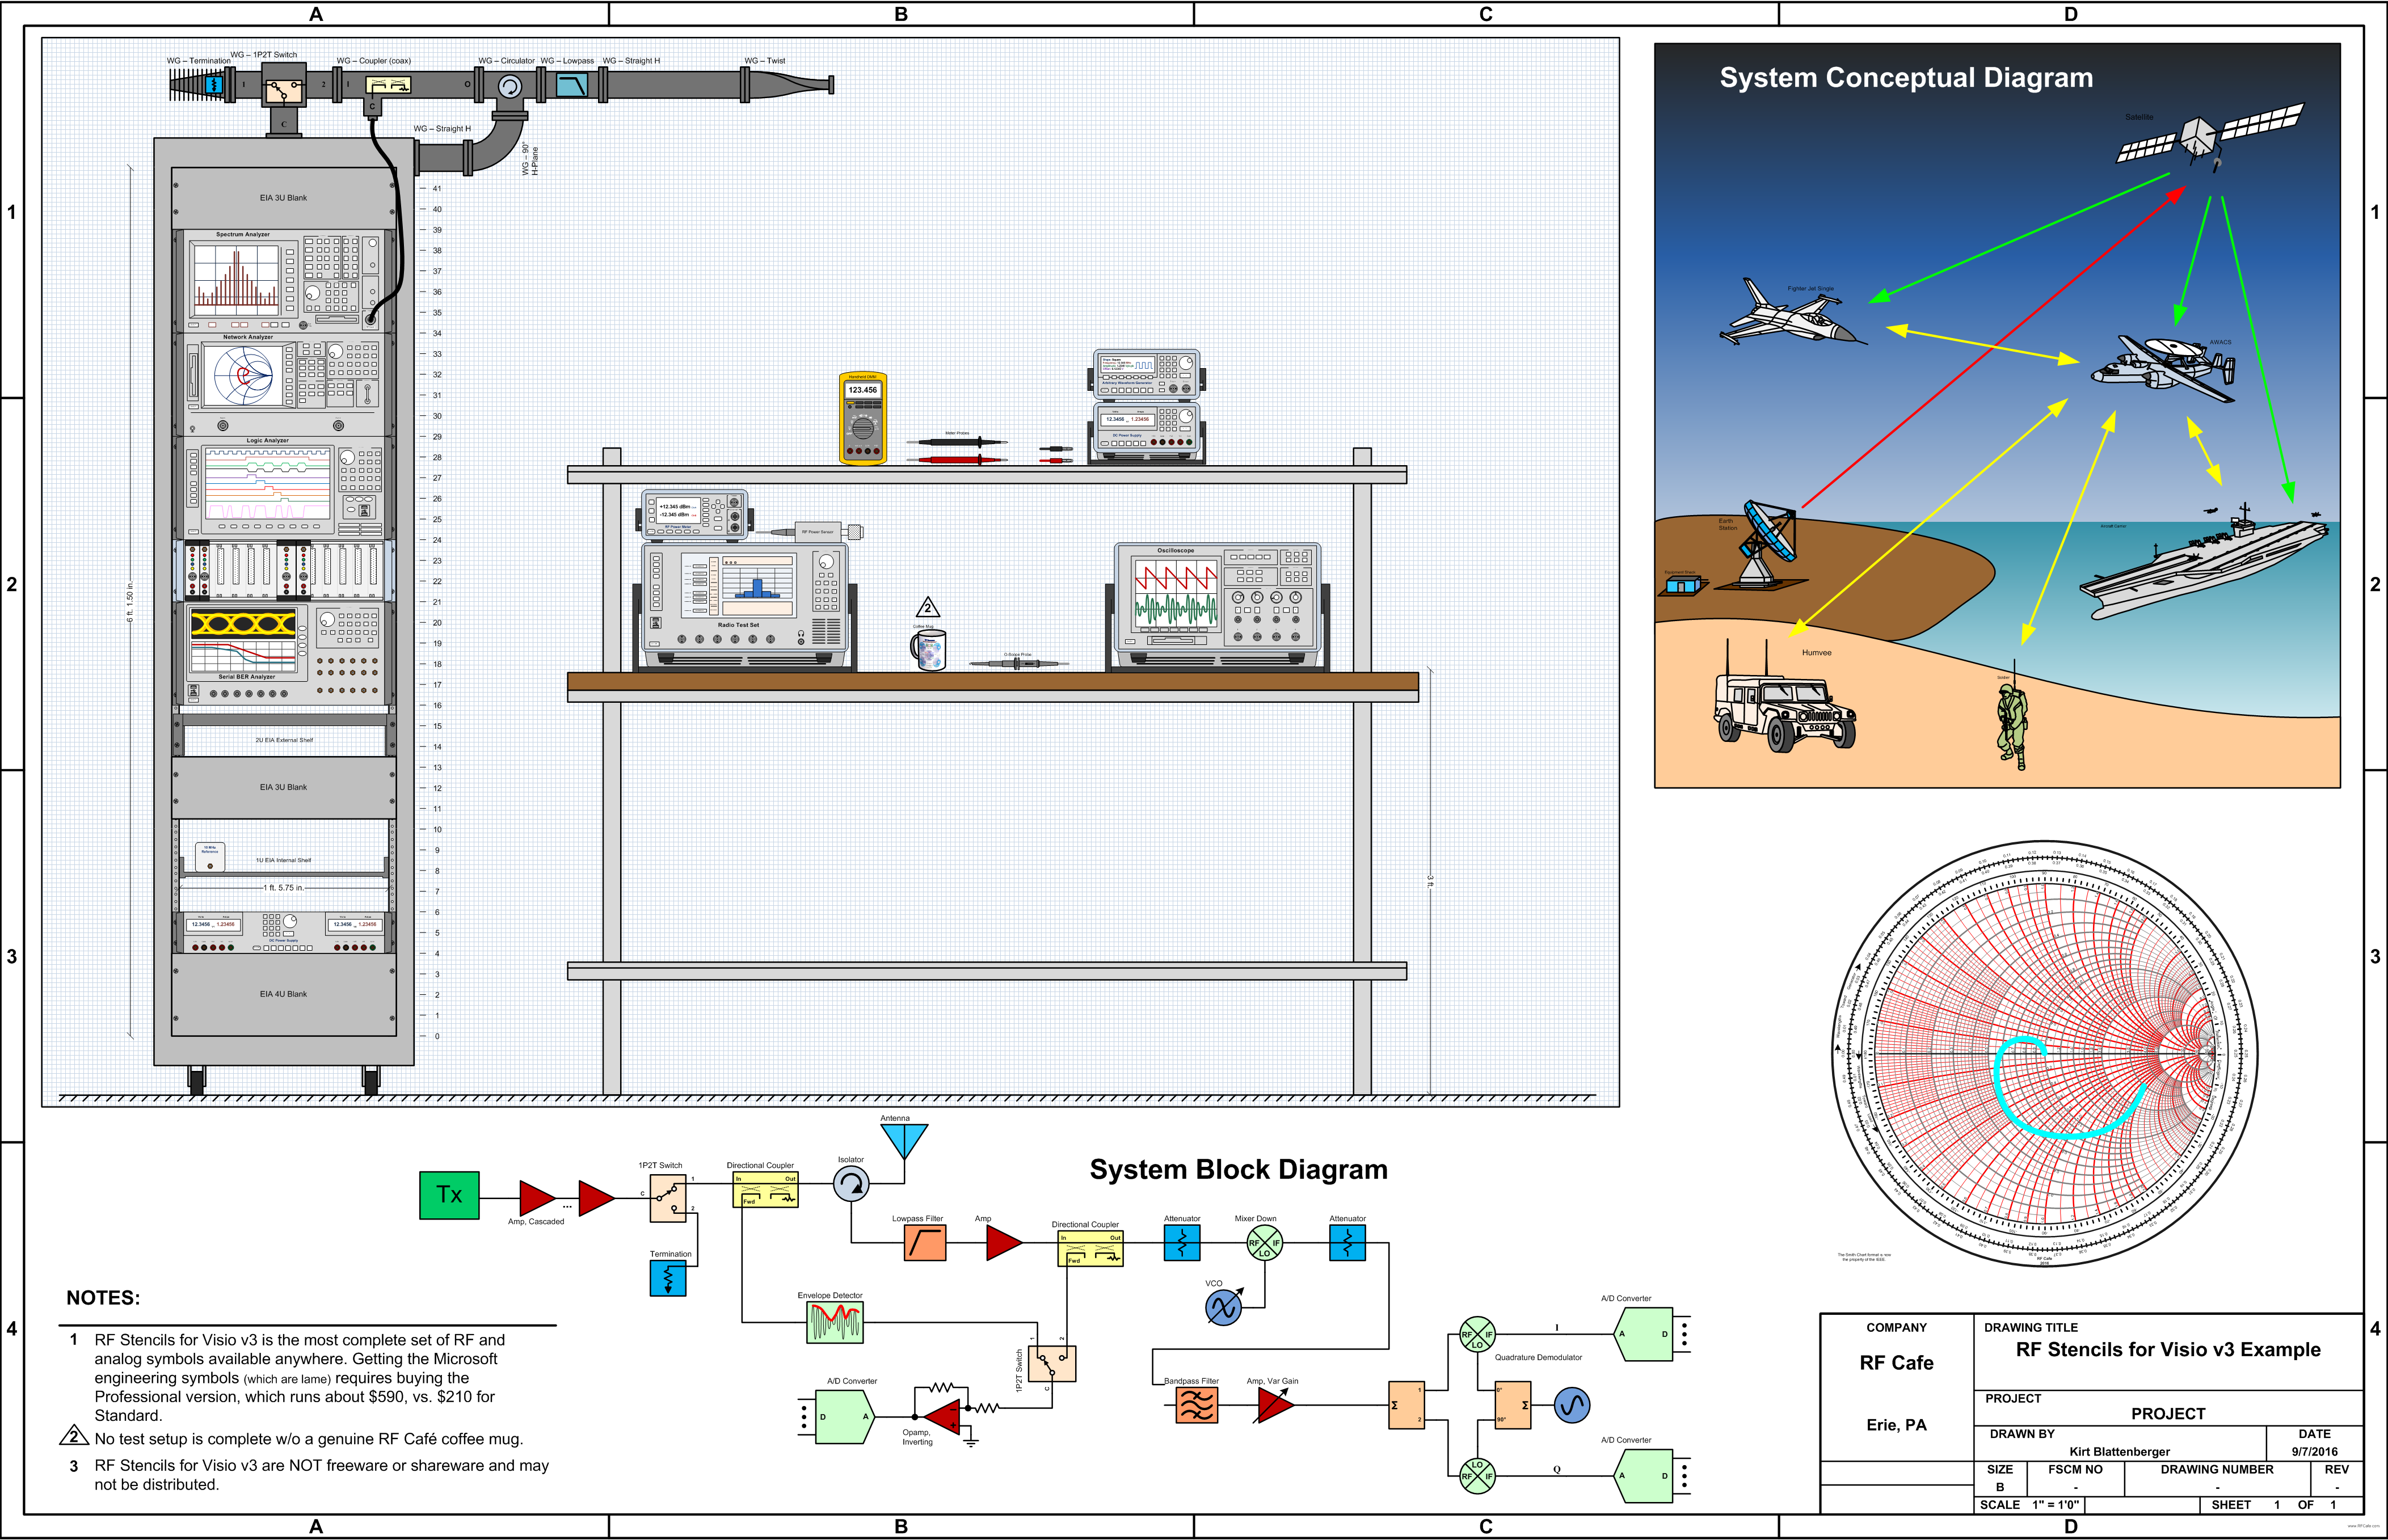 19 Automatic Visio 2013 Network Diagram Examples Download